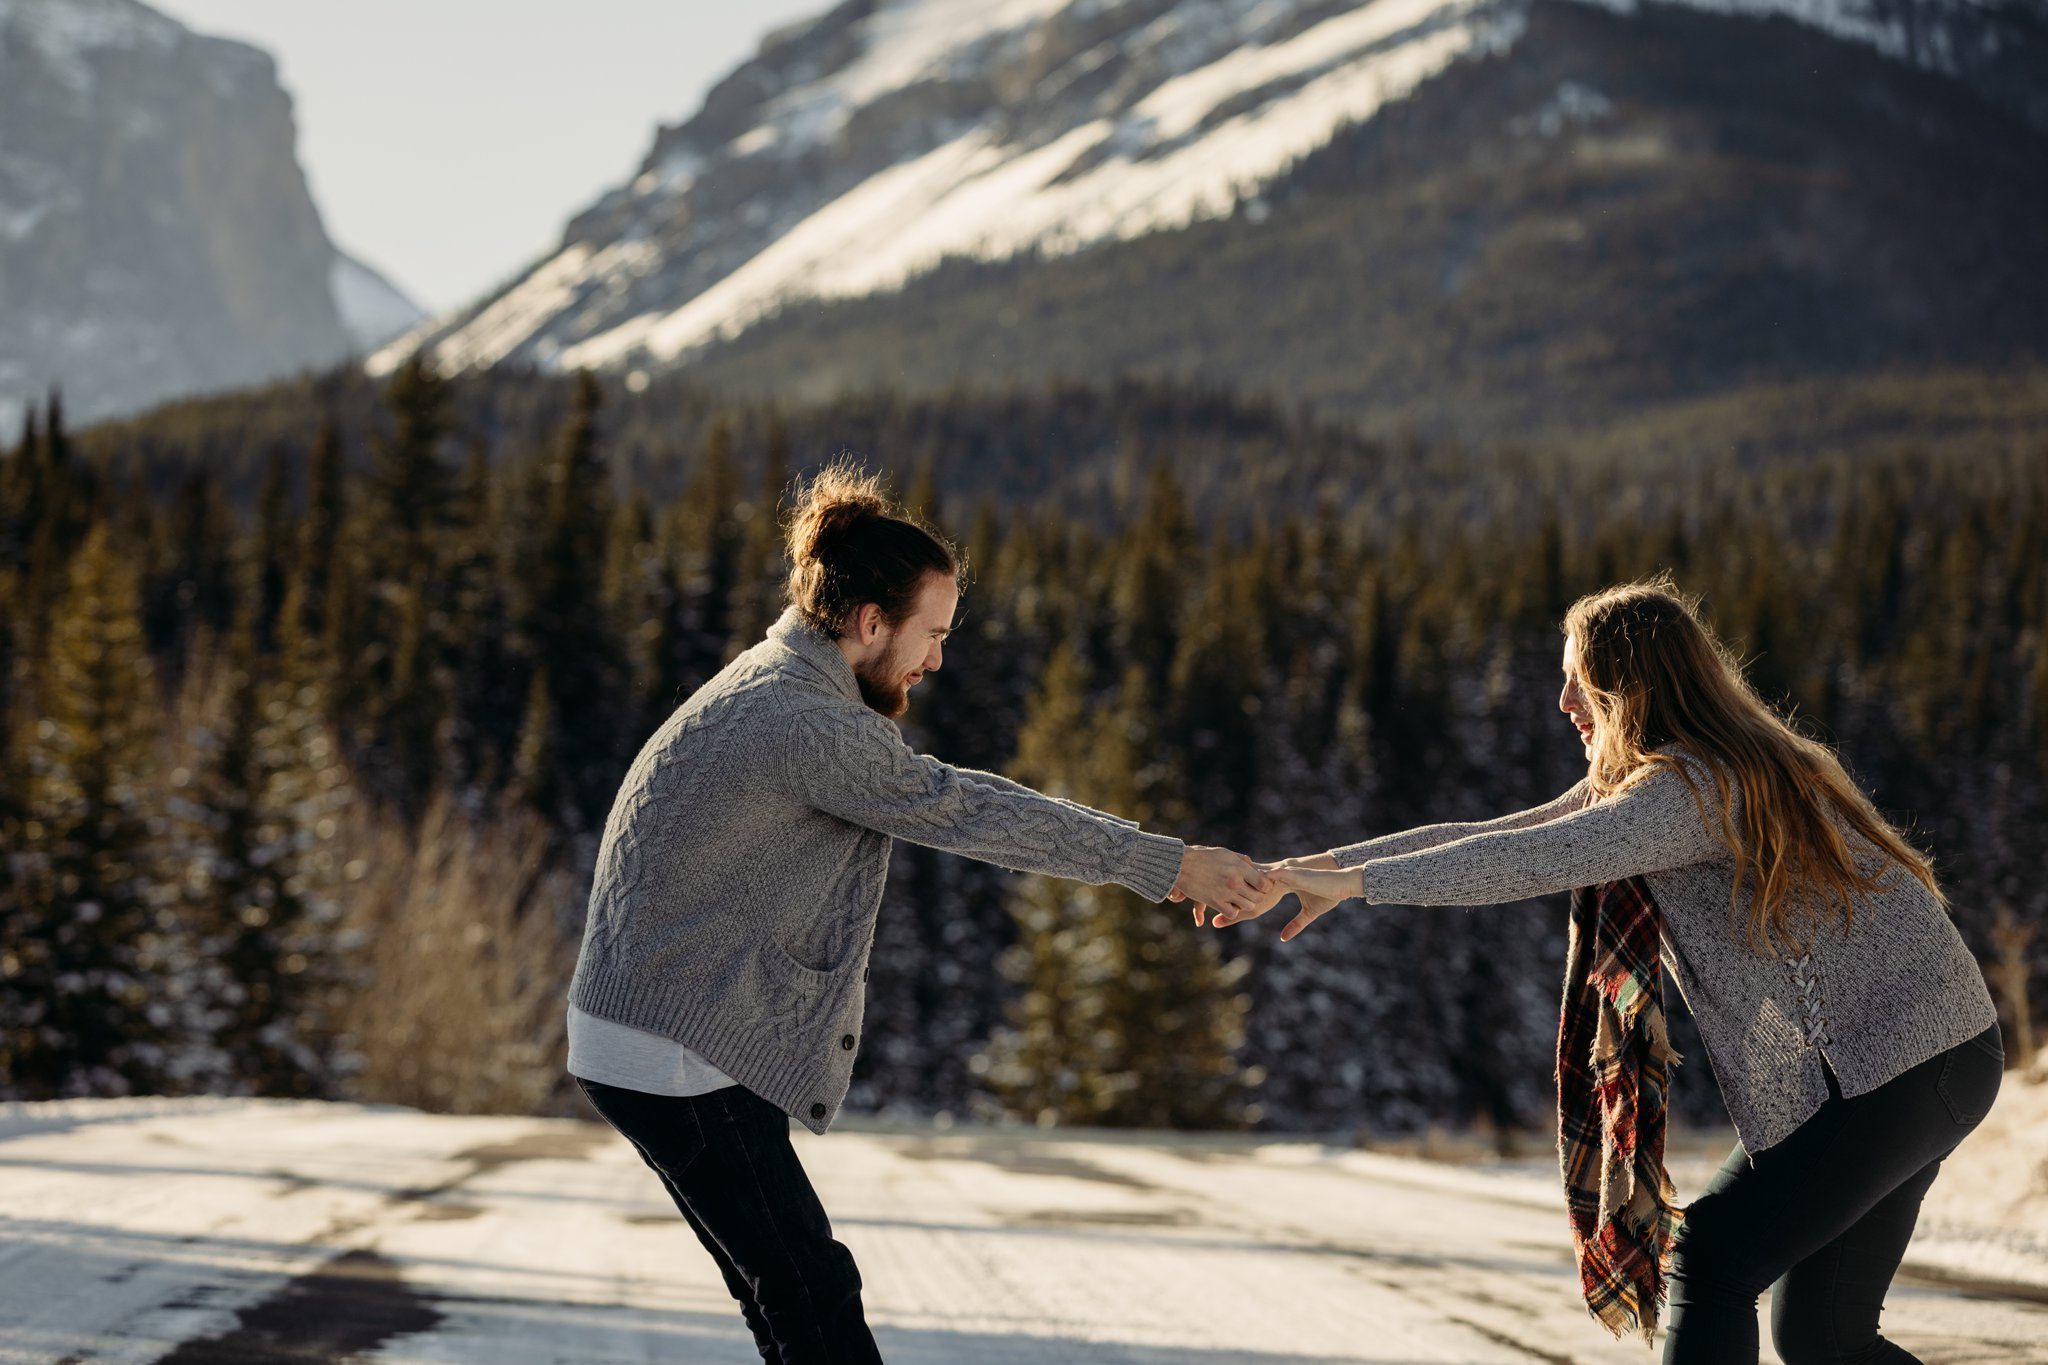 AshleyDaphnePhotography Calgary Photographer Wedding Engagement Sheep River Provincial Park Photos Kananskis Rocky Mountain Canmore Photographer_0019.jpg